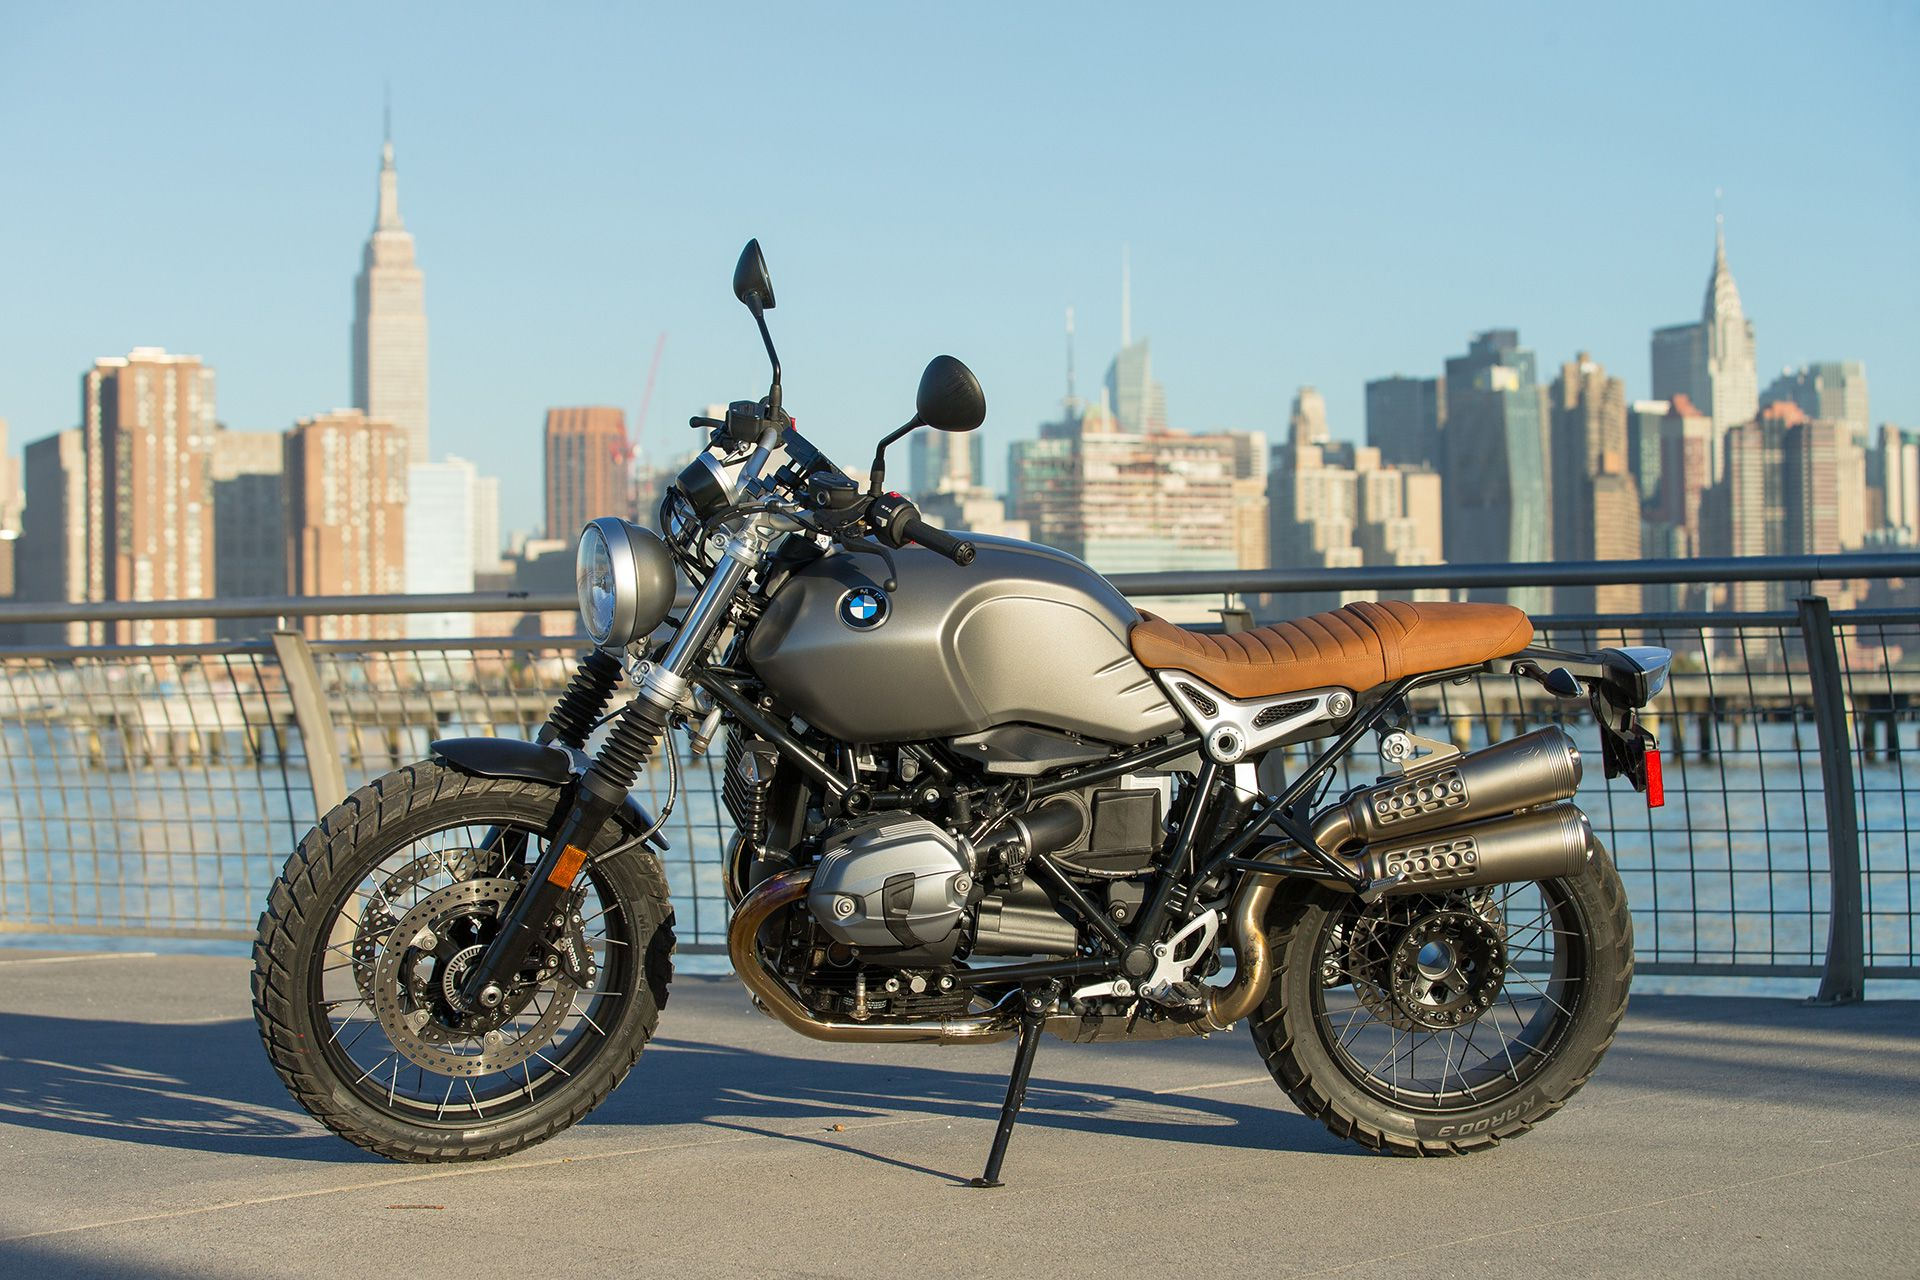 BMW R nineT Scrambler First Ride Motorcycle Review | Cycle World